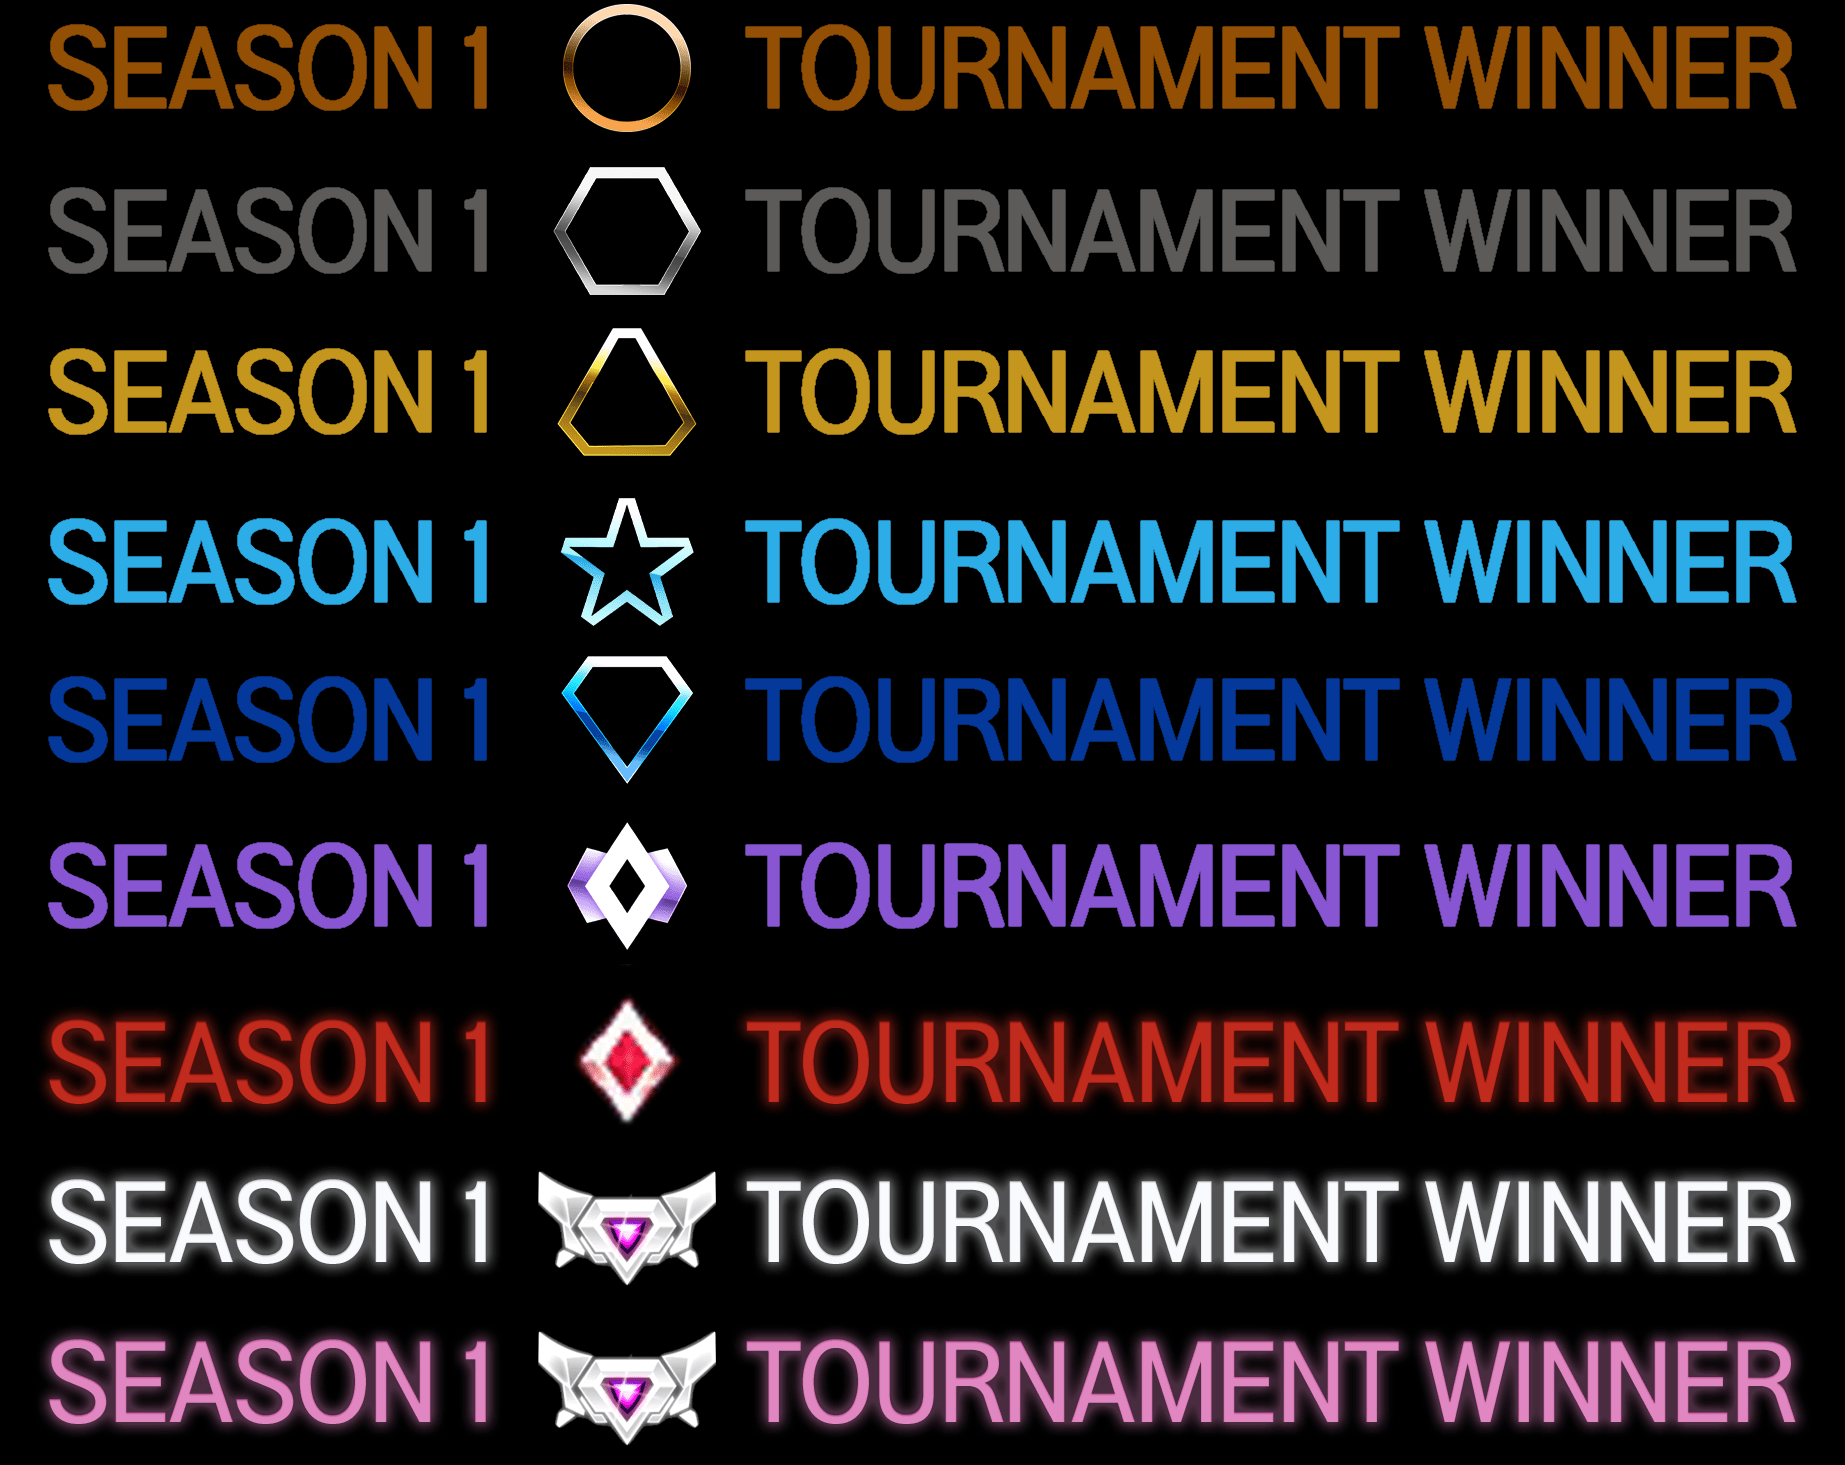 Please Change The Hat Trick Or 3 Time Tournament Winners From The Tacky Green To Their Respective Colors I Really Don T Care Whether They Glow Or Not Below Gc As It D Make